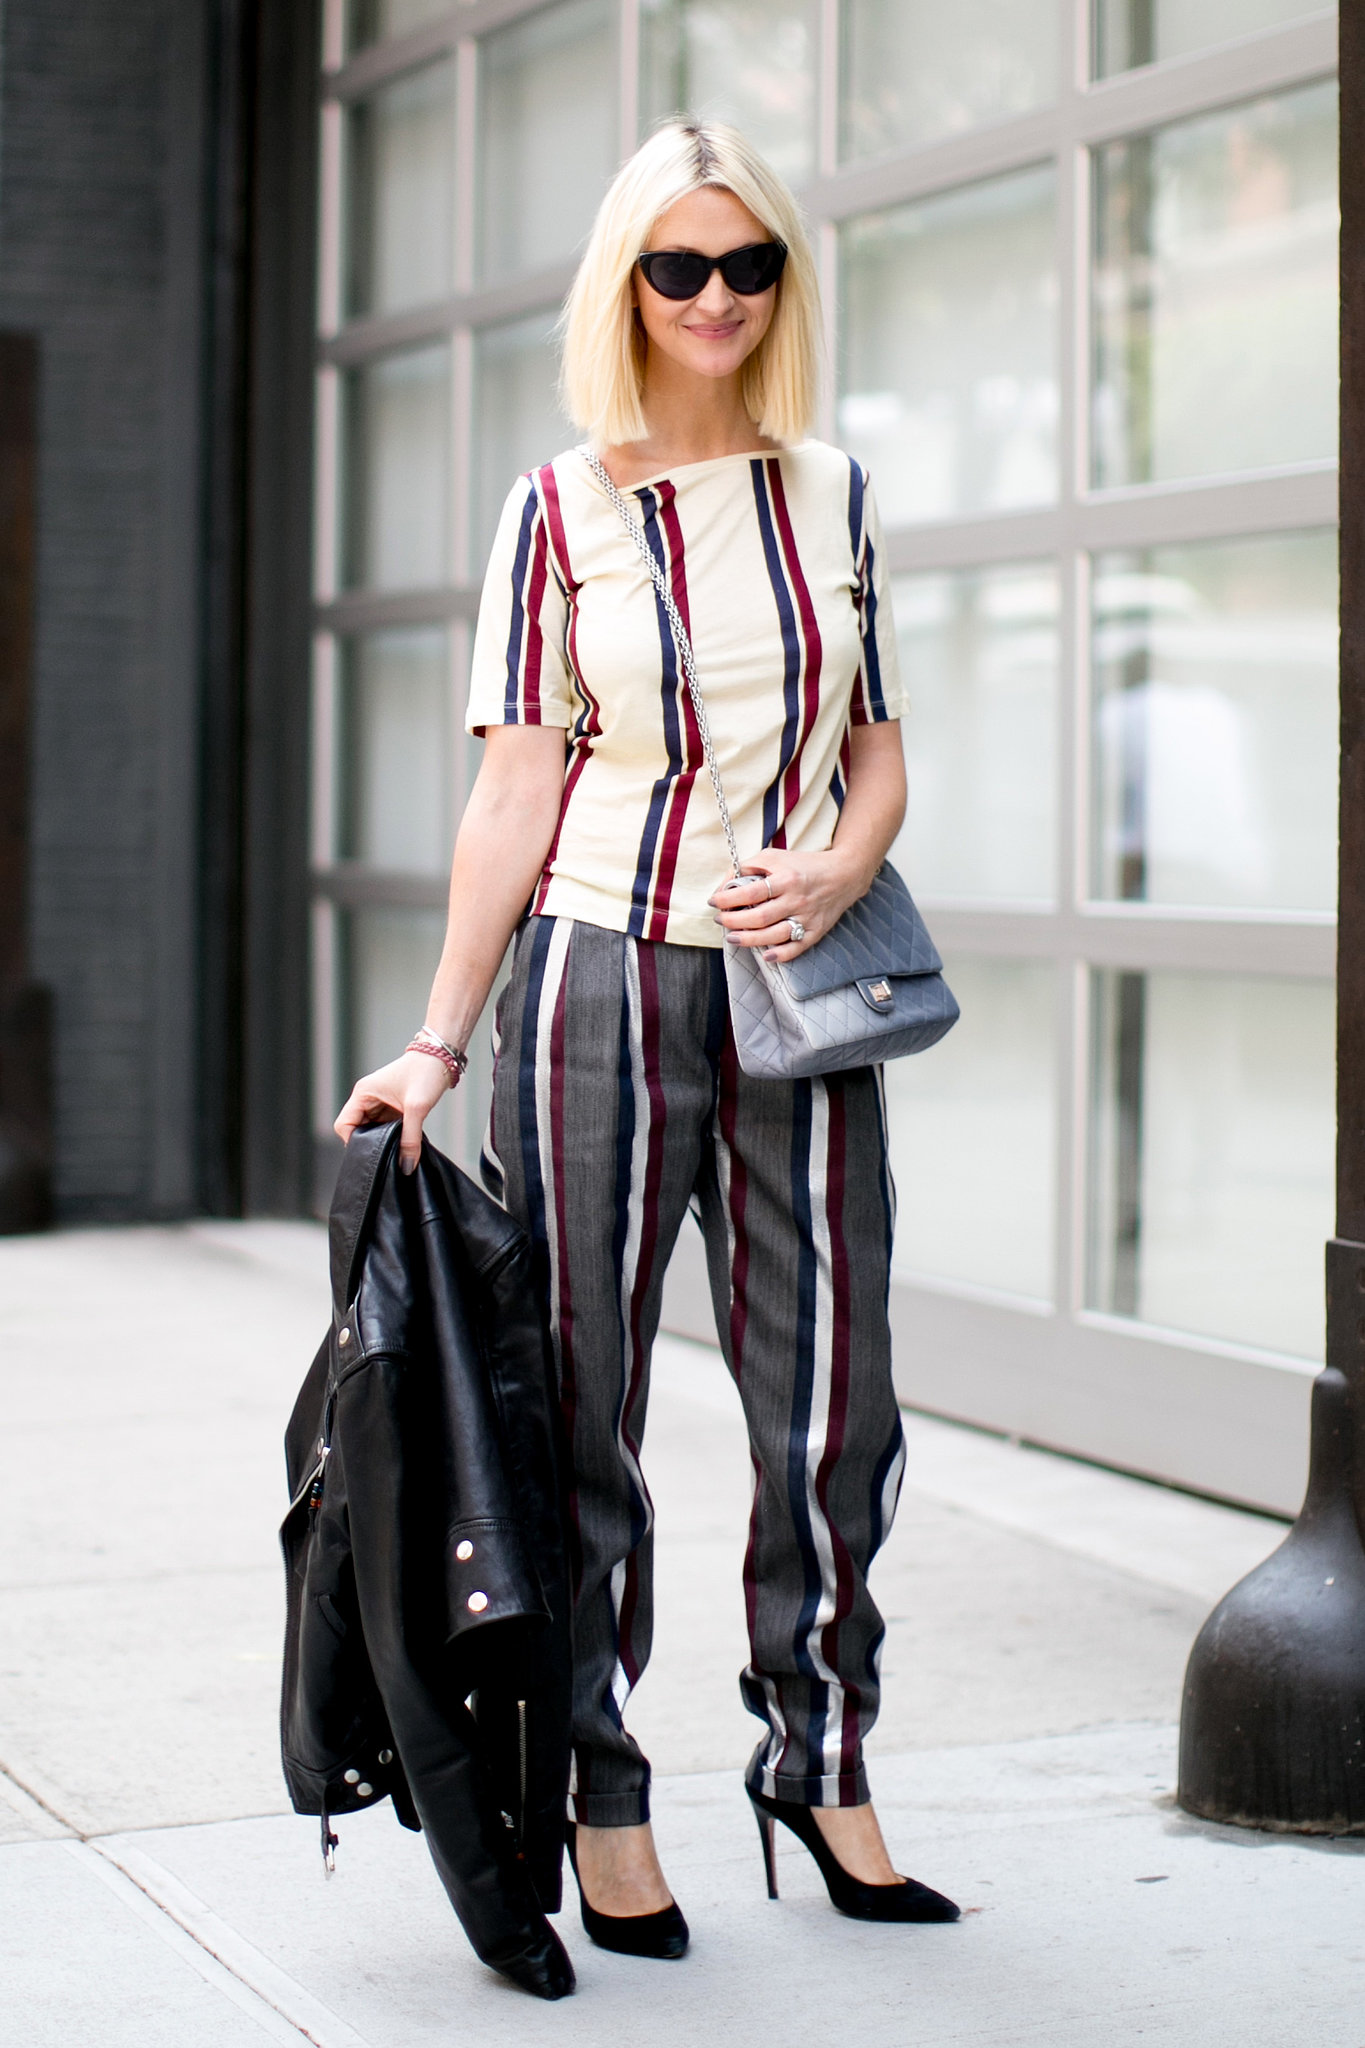 Zanna Roberts Rassi Was Stripe Happy From Head To Toe Hot Shots The Best Street Style At